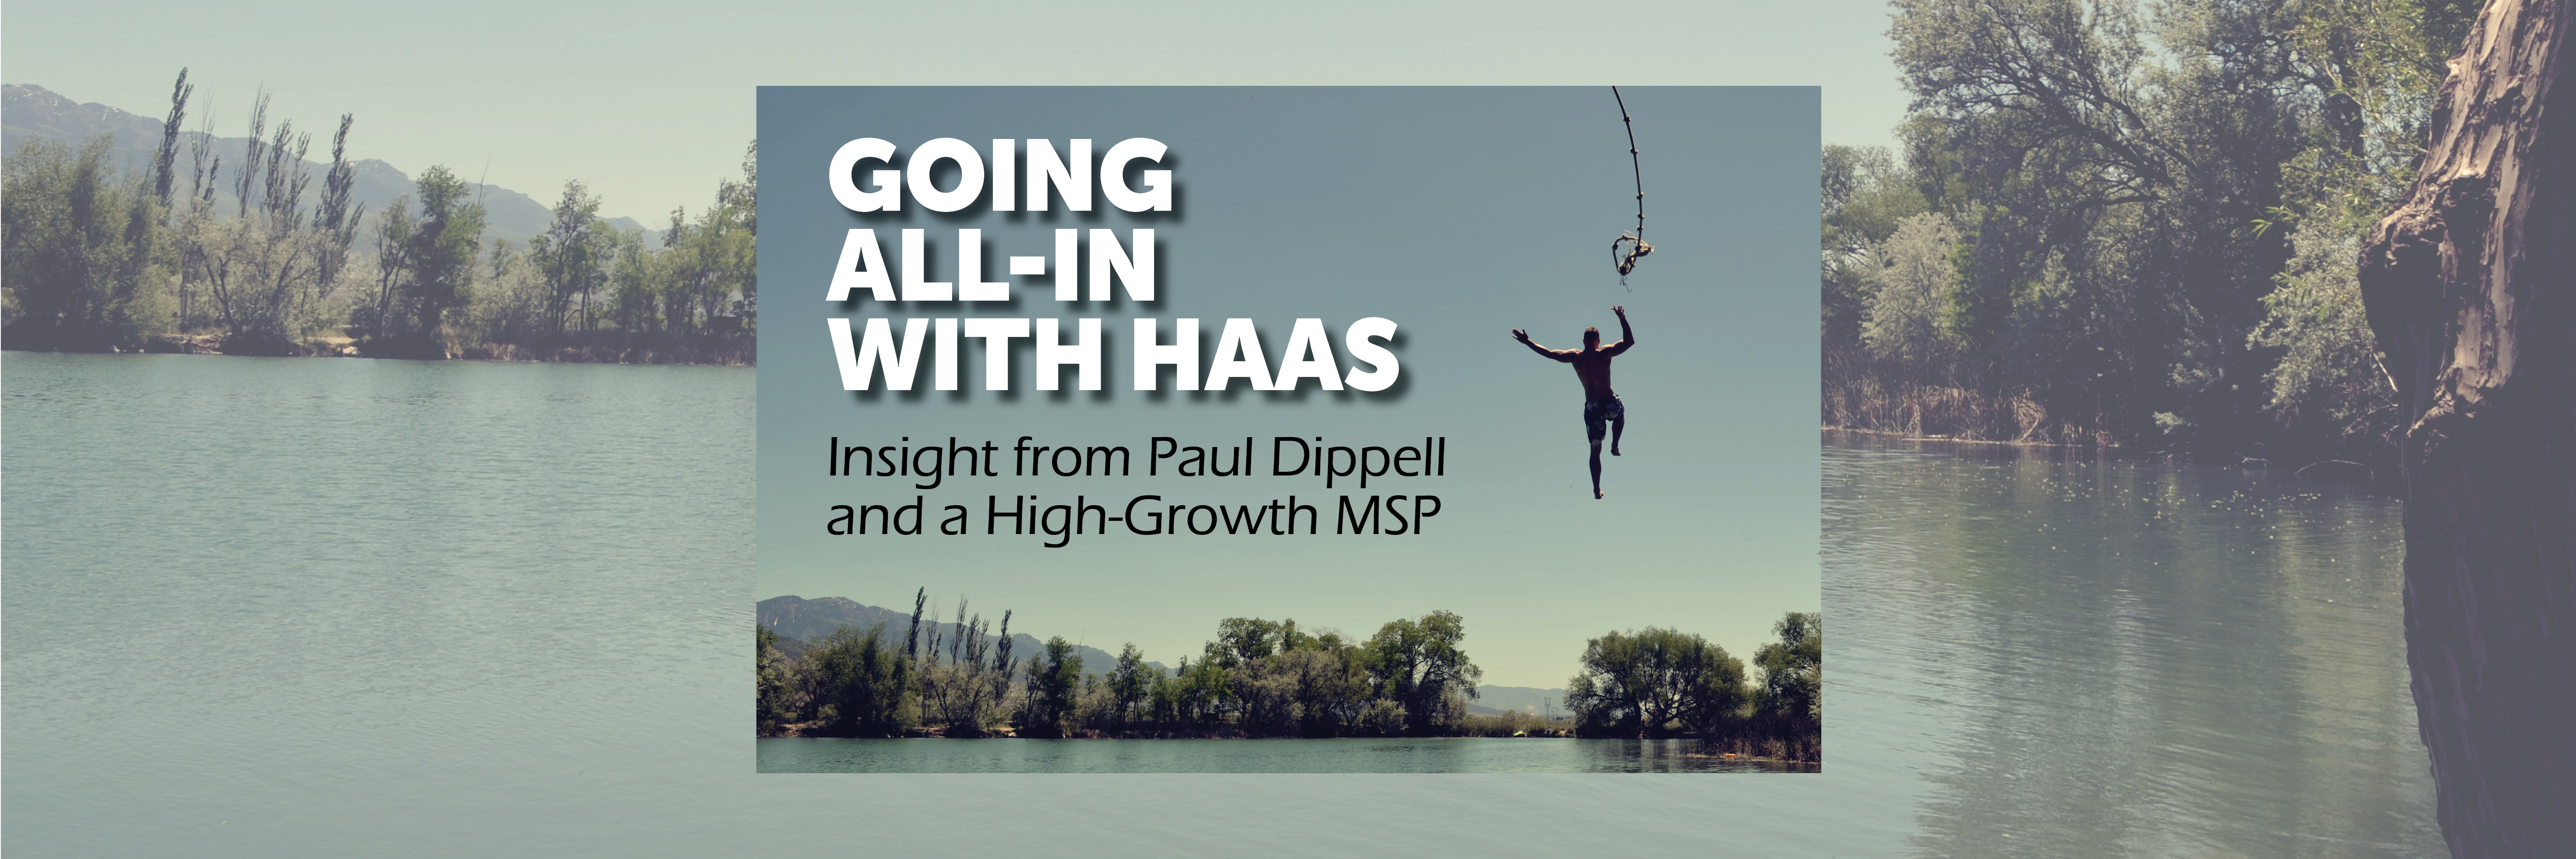 Going All-In with HaaS – Insight from Paul Dippell and a High-Growth MSP